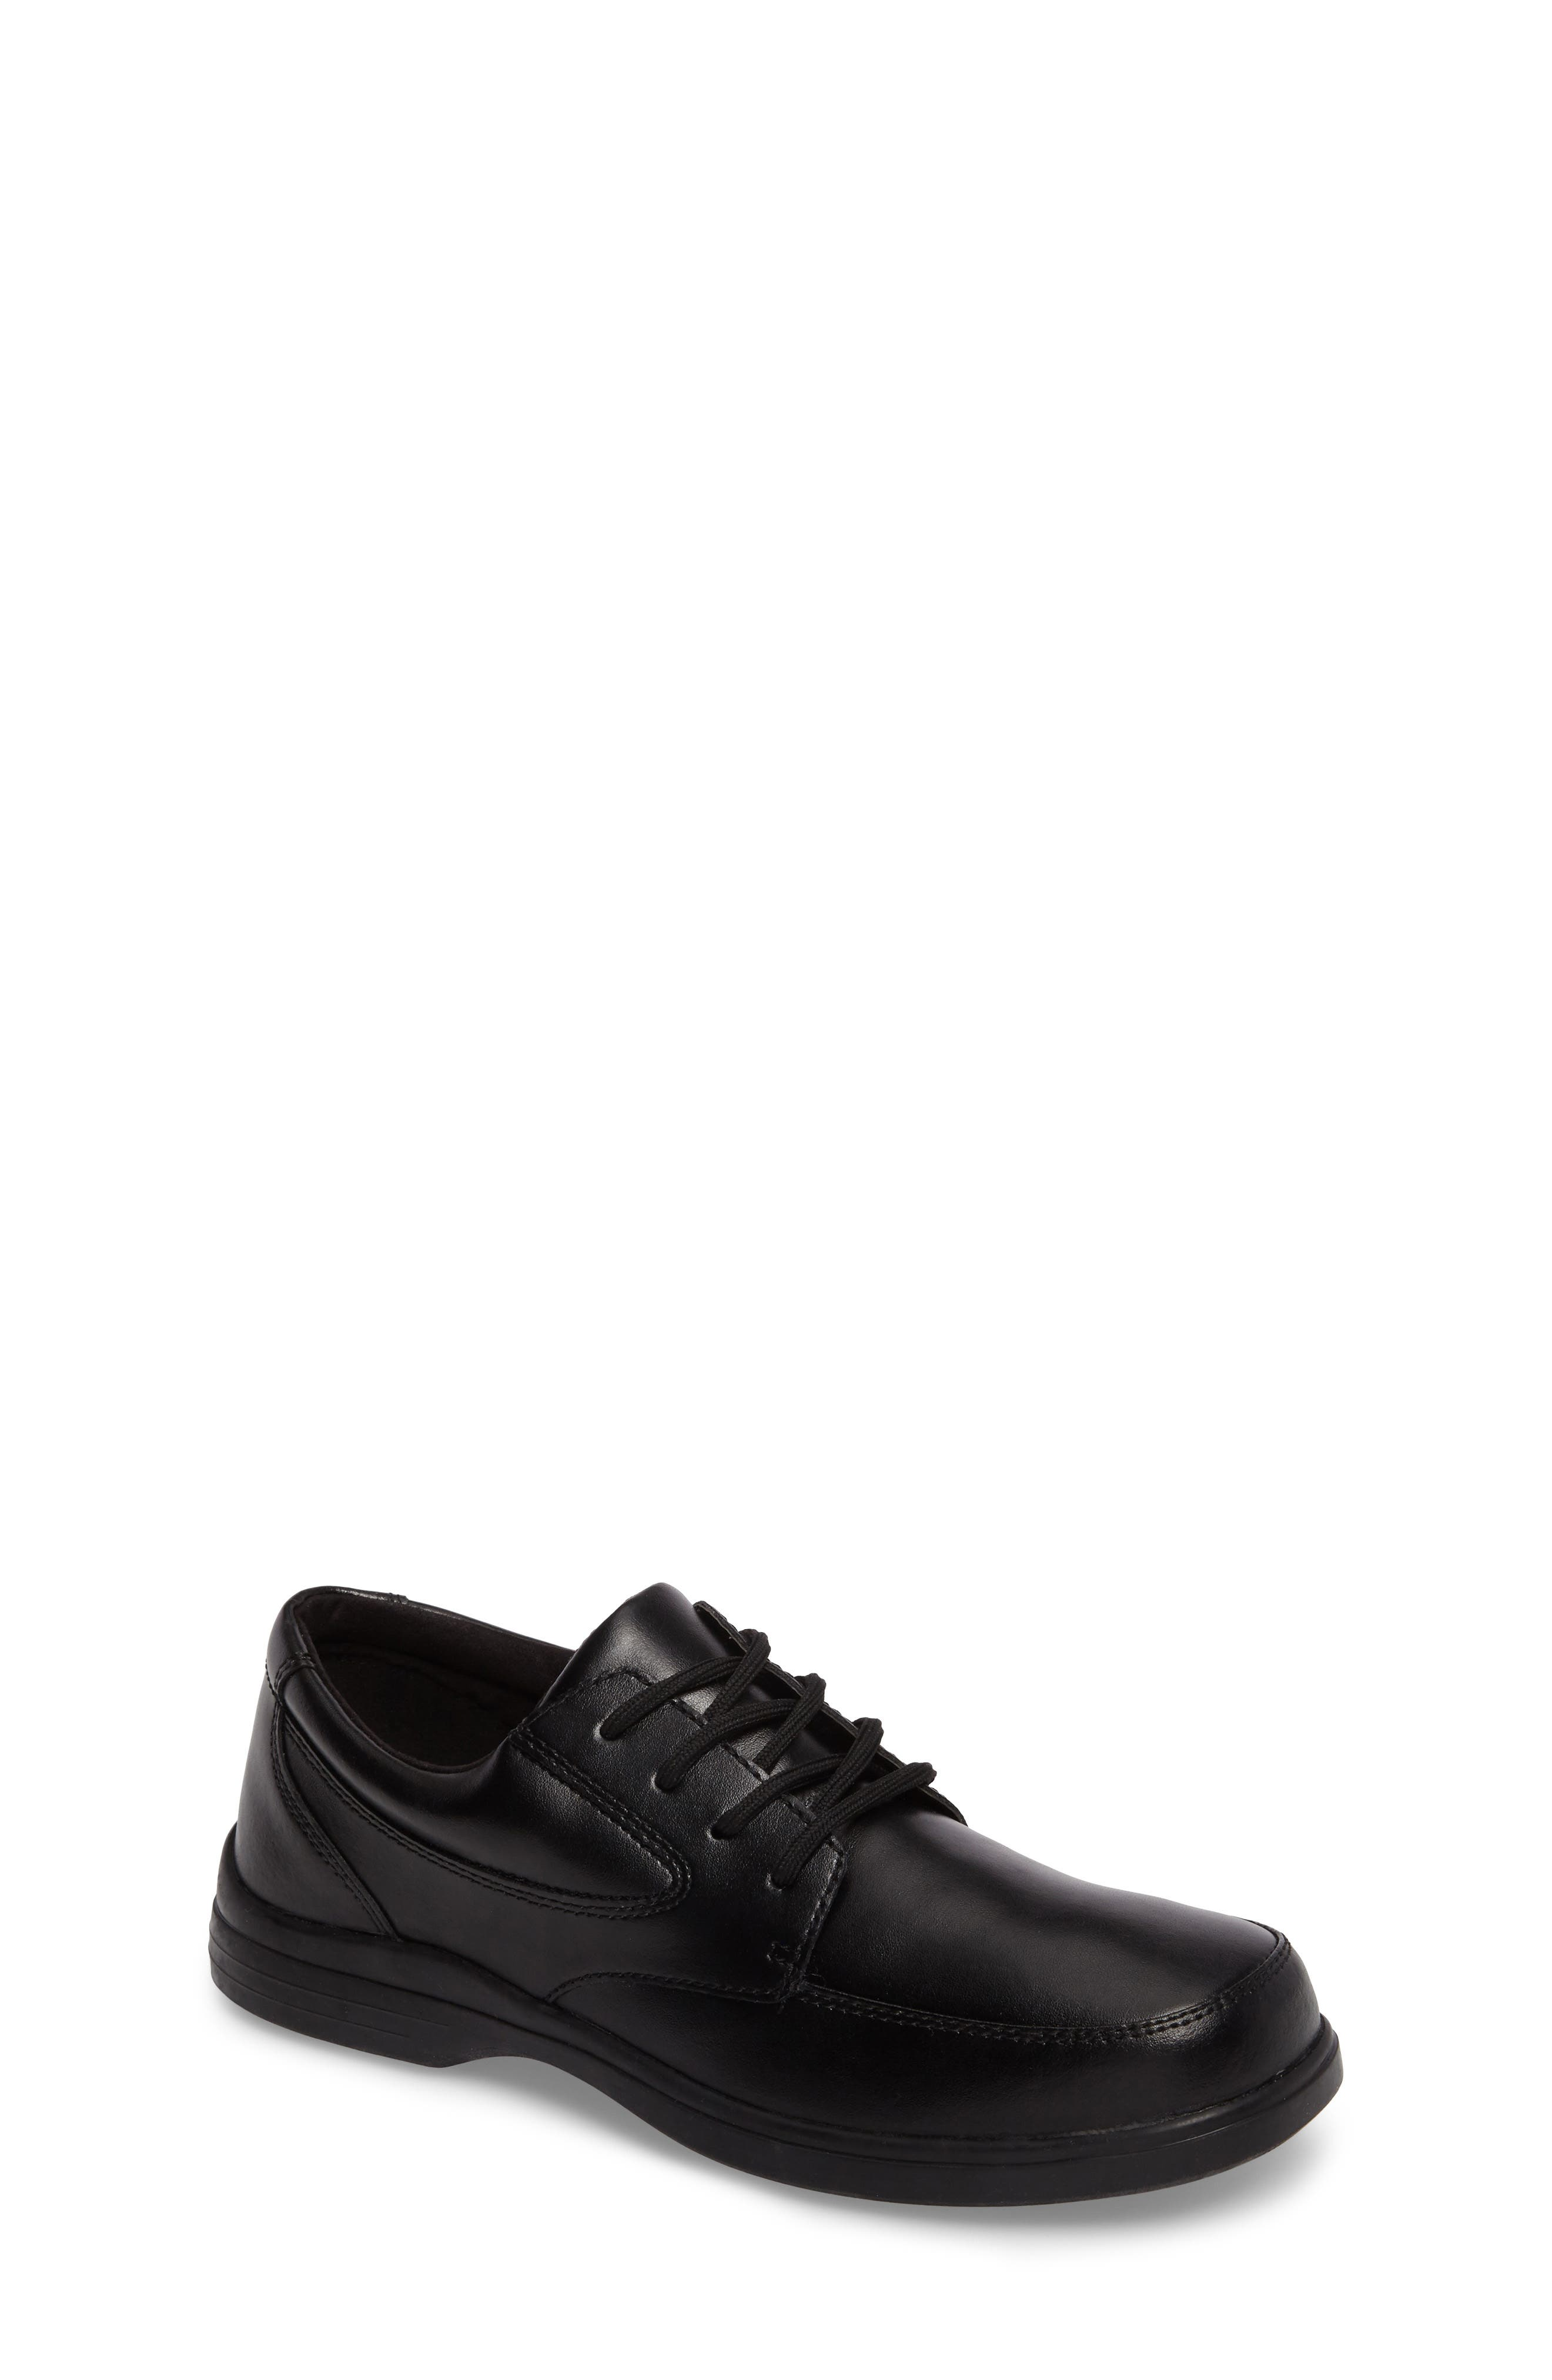 Ty Dress Shoe,                         Main,                         color, Black Leather